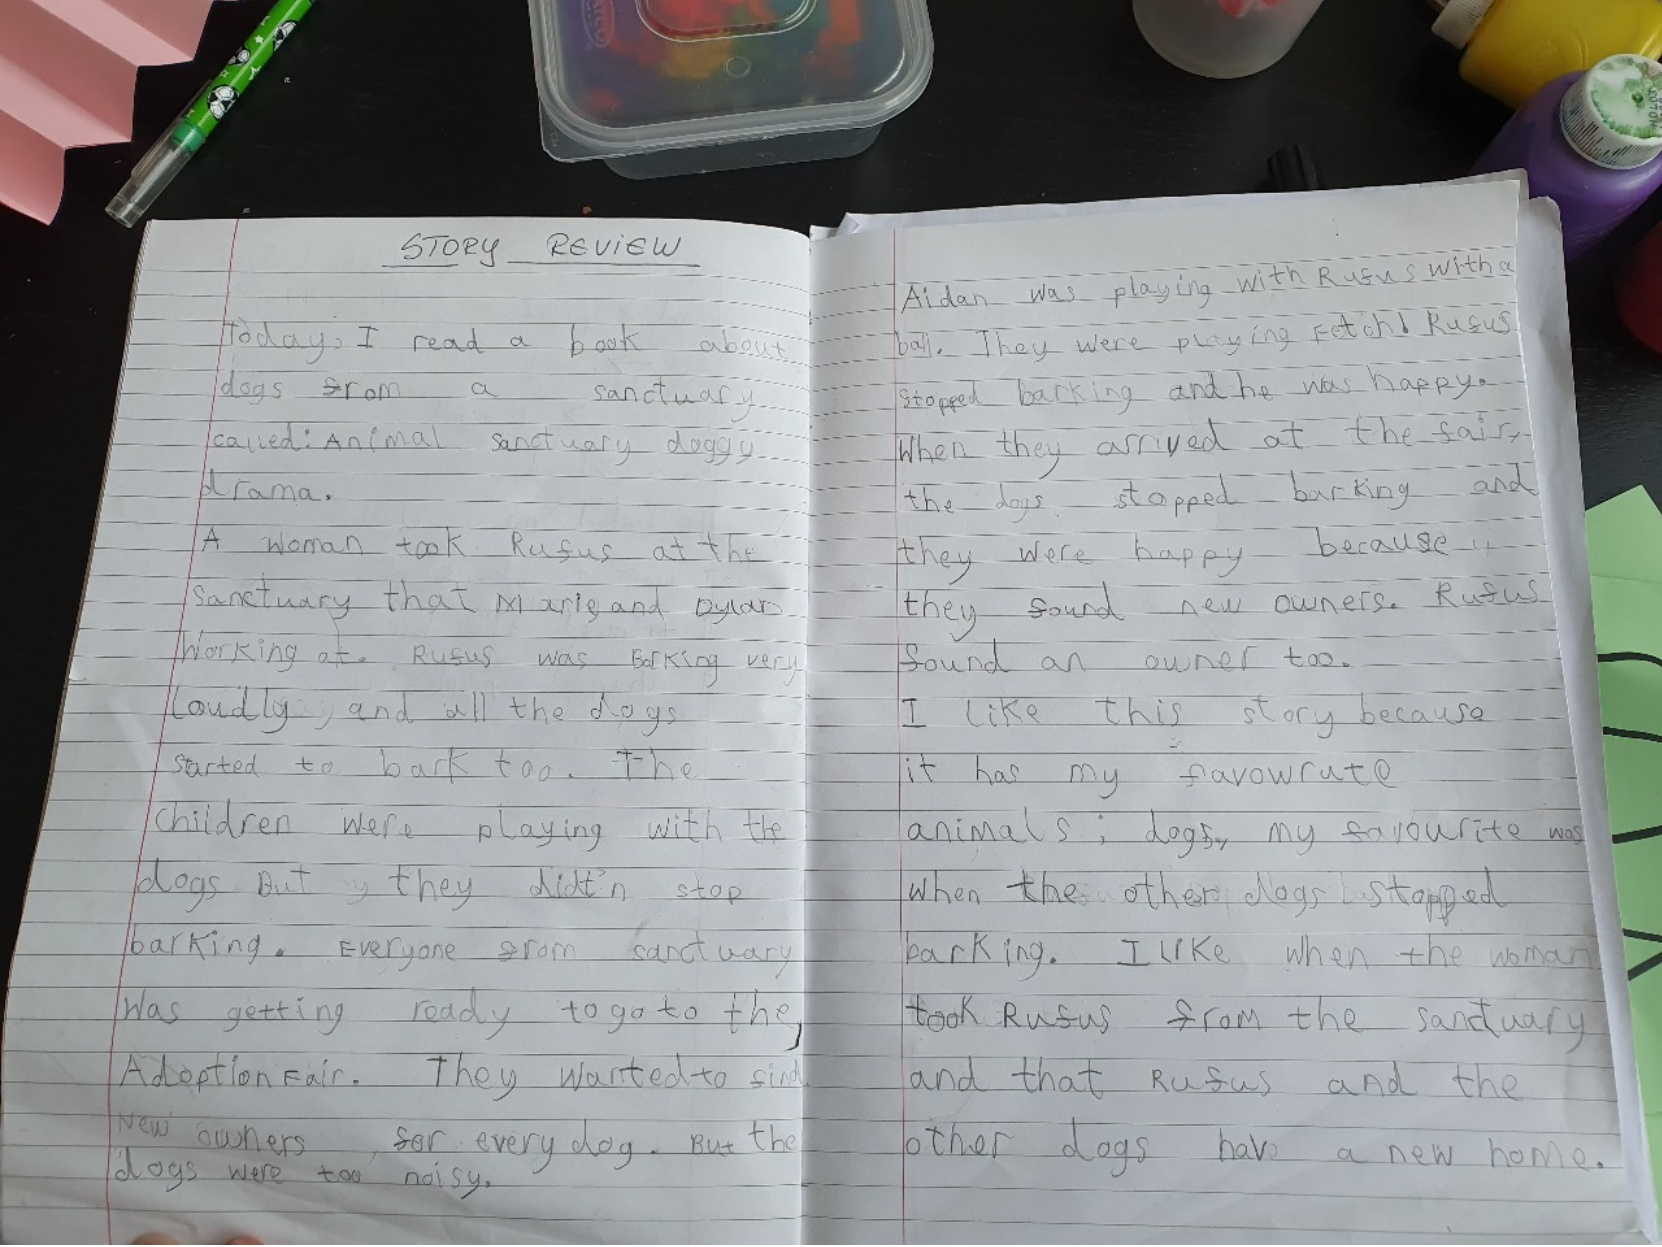 Ianis's wonderful book review!